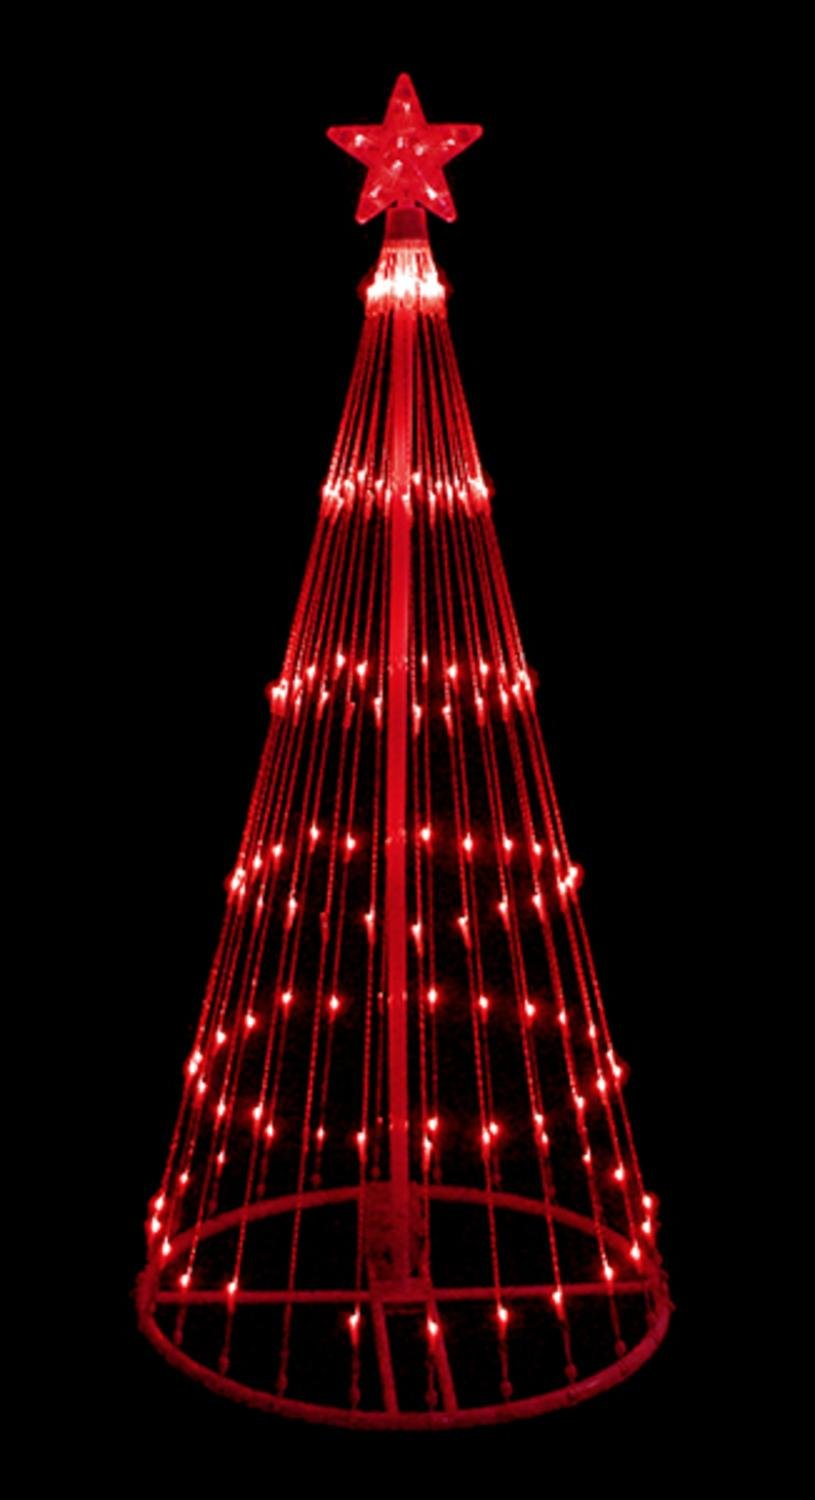 red led light show cone christmas tree lighted yard art decoration outdoor lighted christmas decorations garden outdoor - Led Christmas Tree